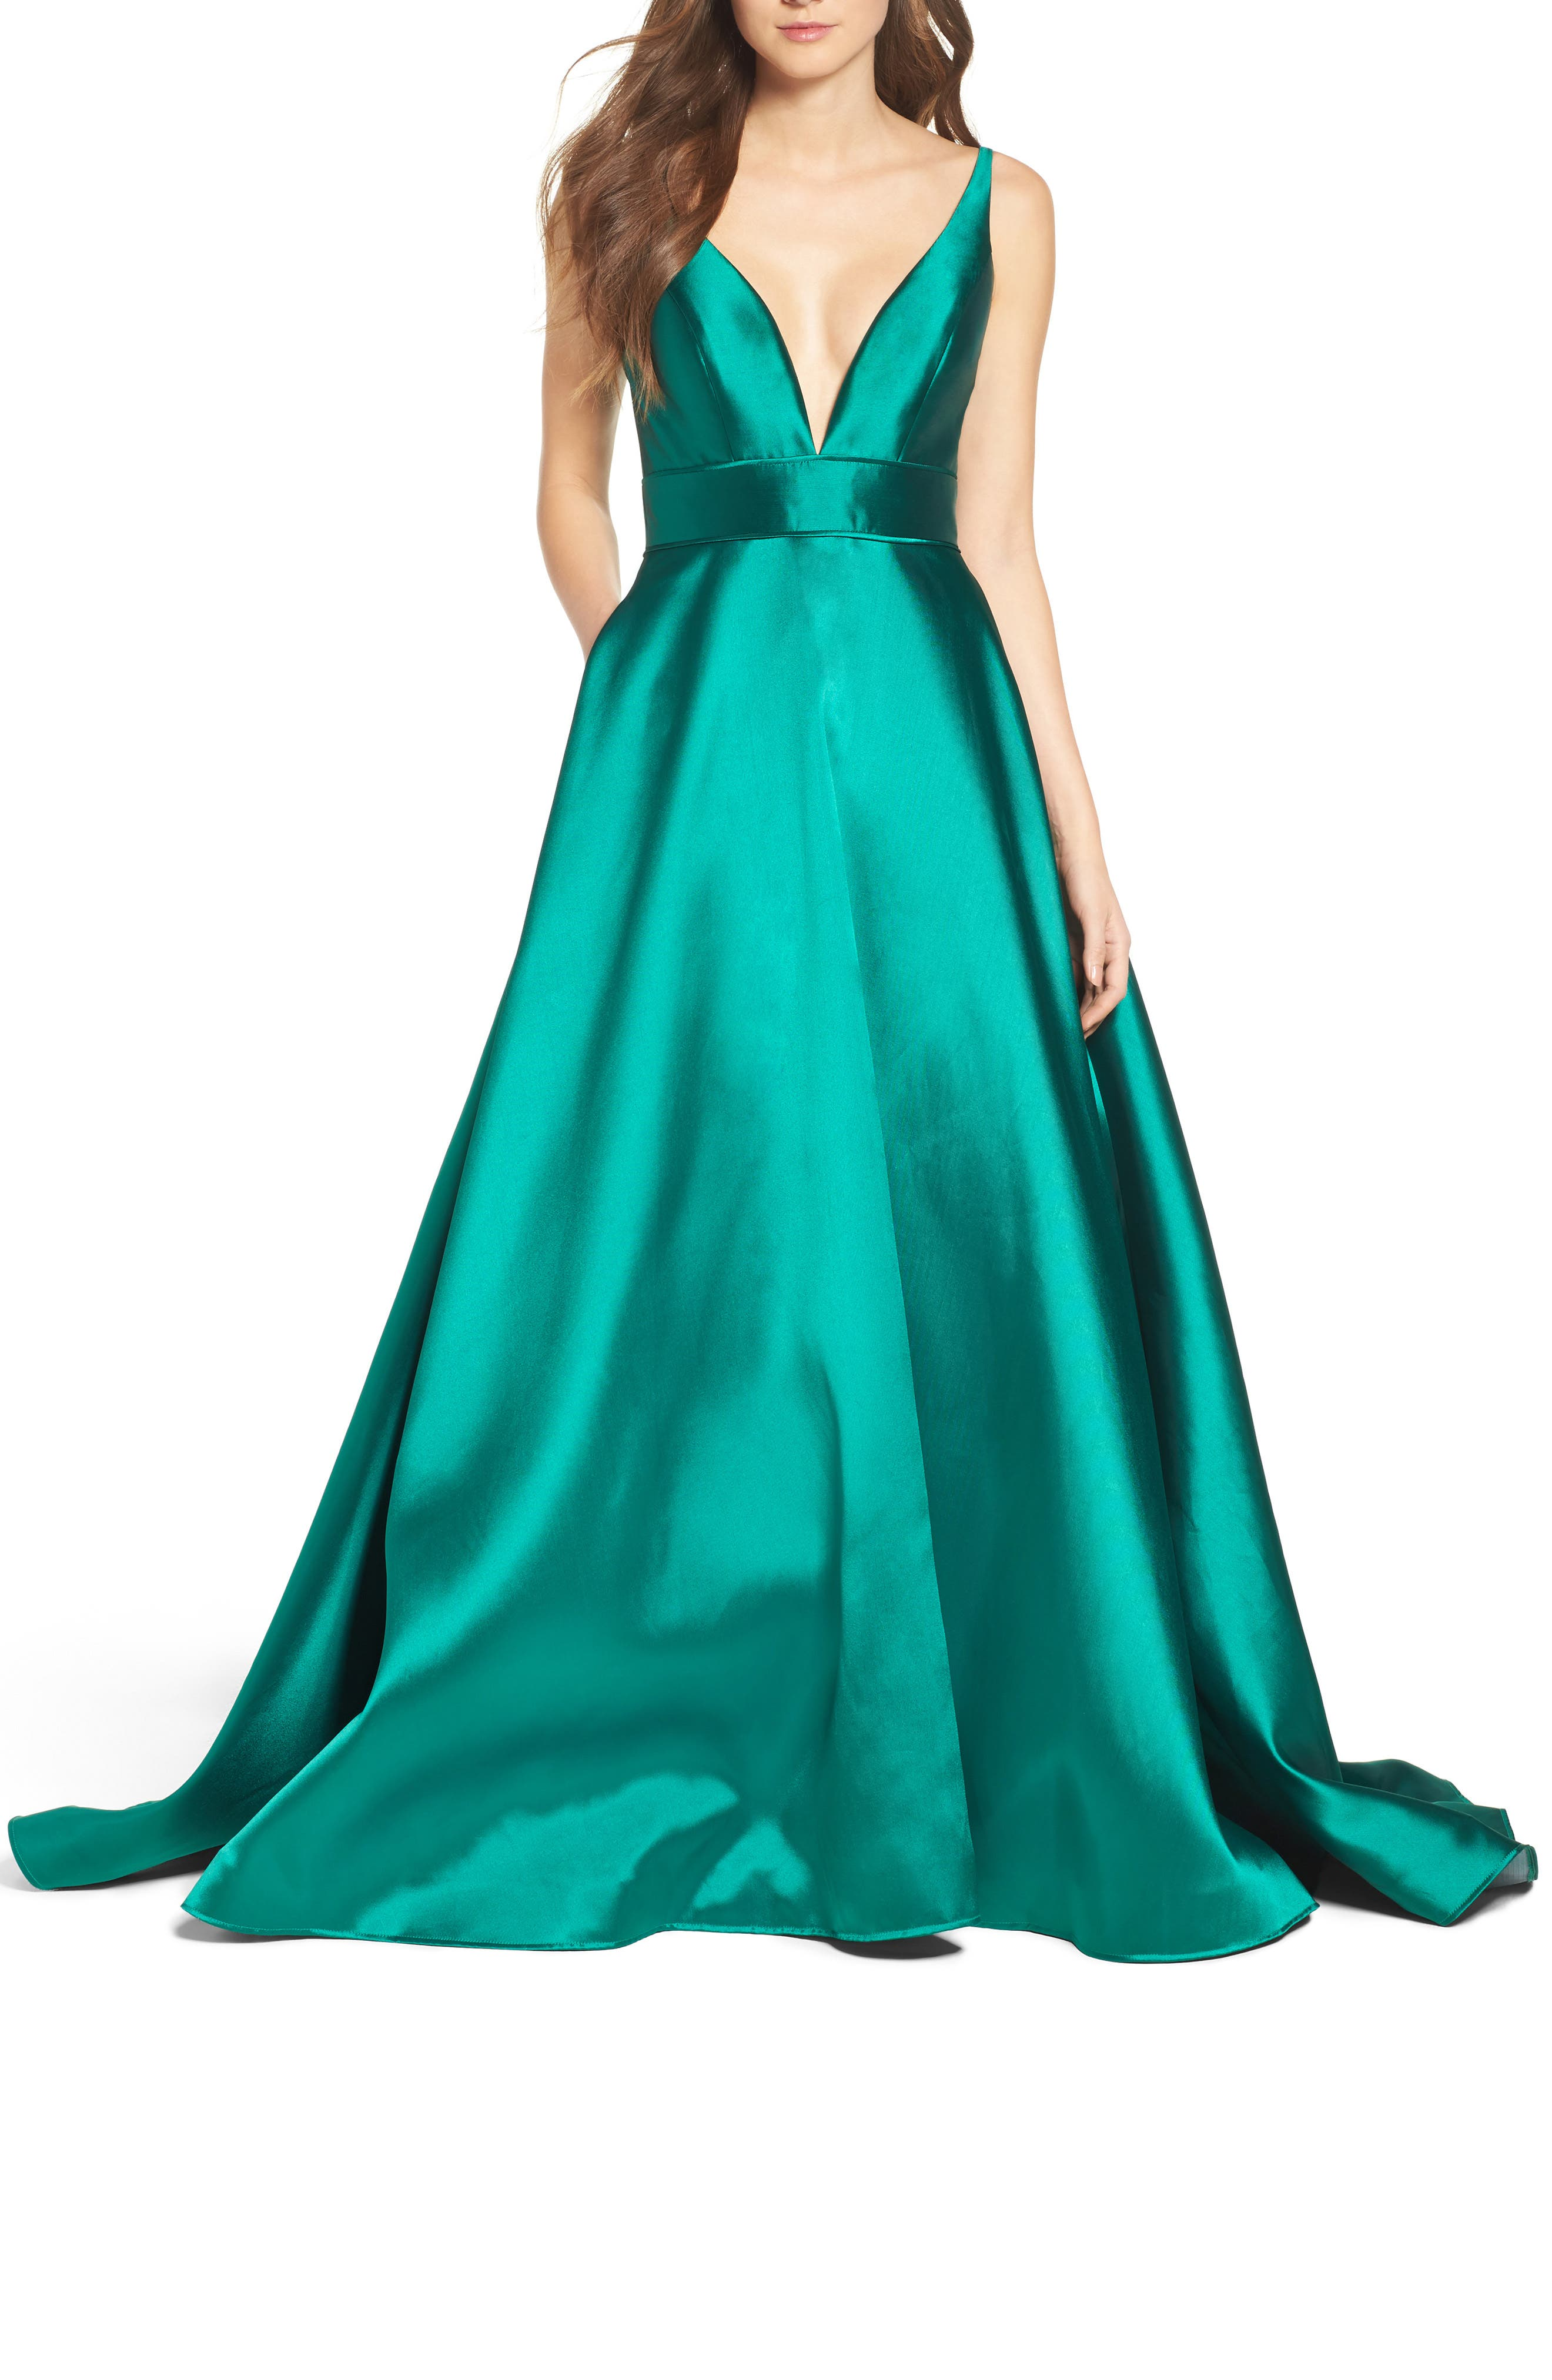 Ieena for Mac Duggal Plunging Sweetheart Neck Ballgown